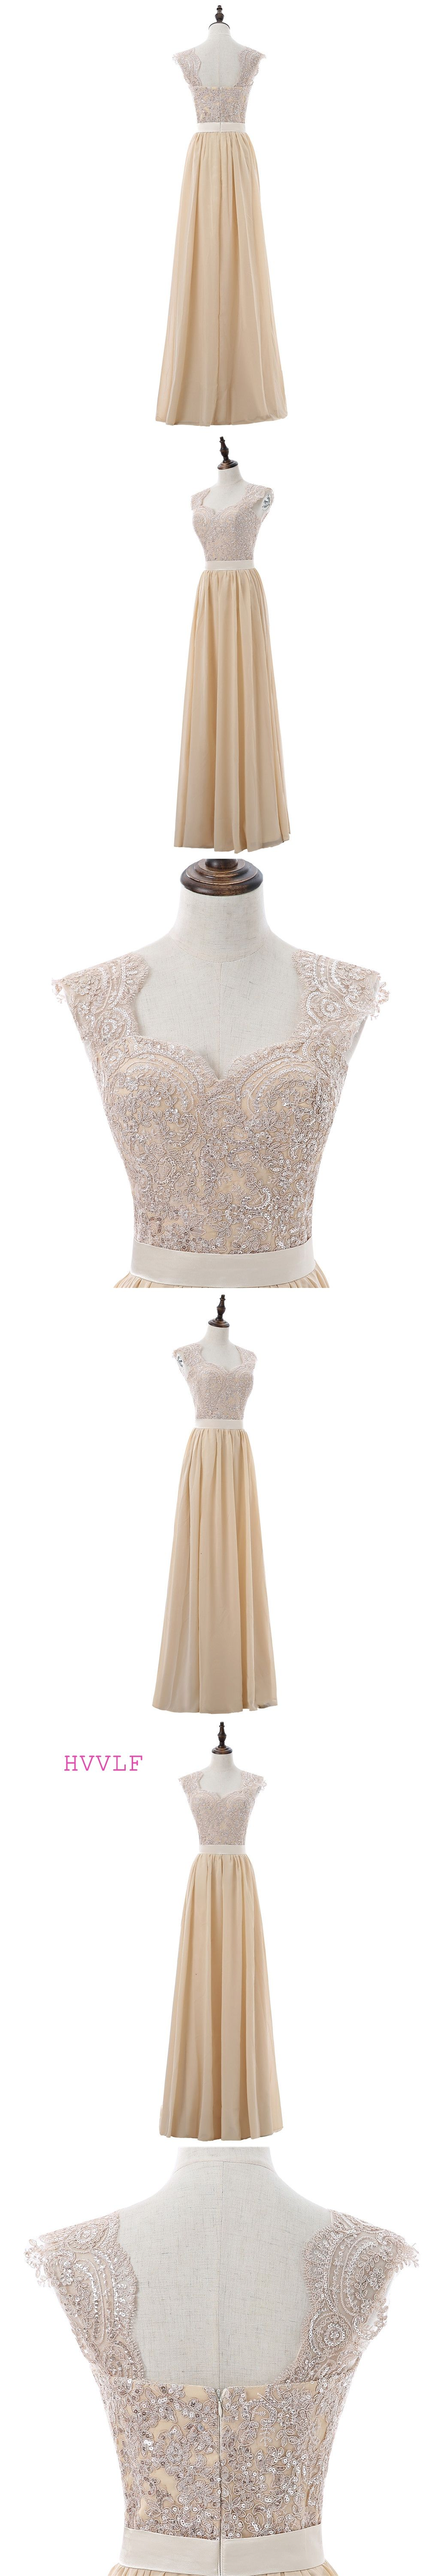 Champagne 2018 cheap bridesmaid dresses under 50 a line cap sleeves champagne 2018 cheap bridesmaid dresses under 50 a line cap sleeves chiffon lace sequins long ombrellifo Choice Image